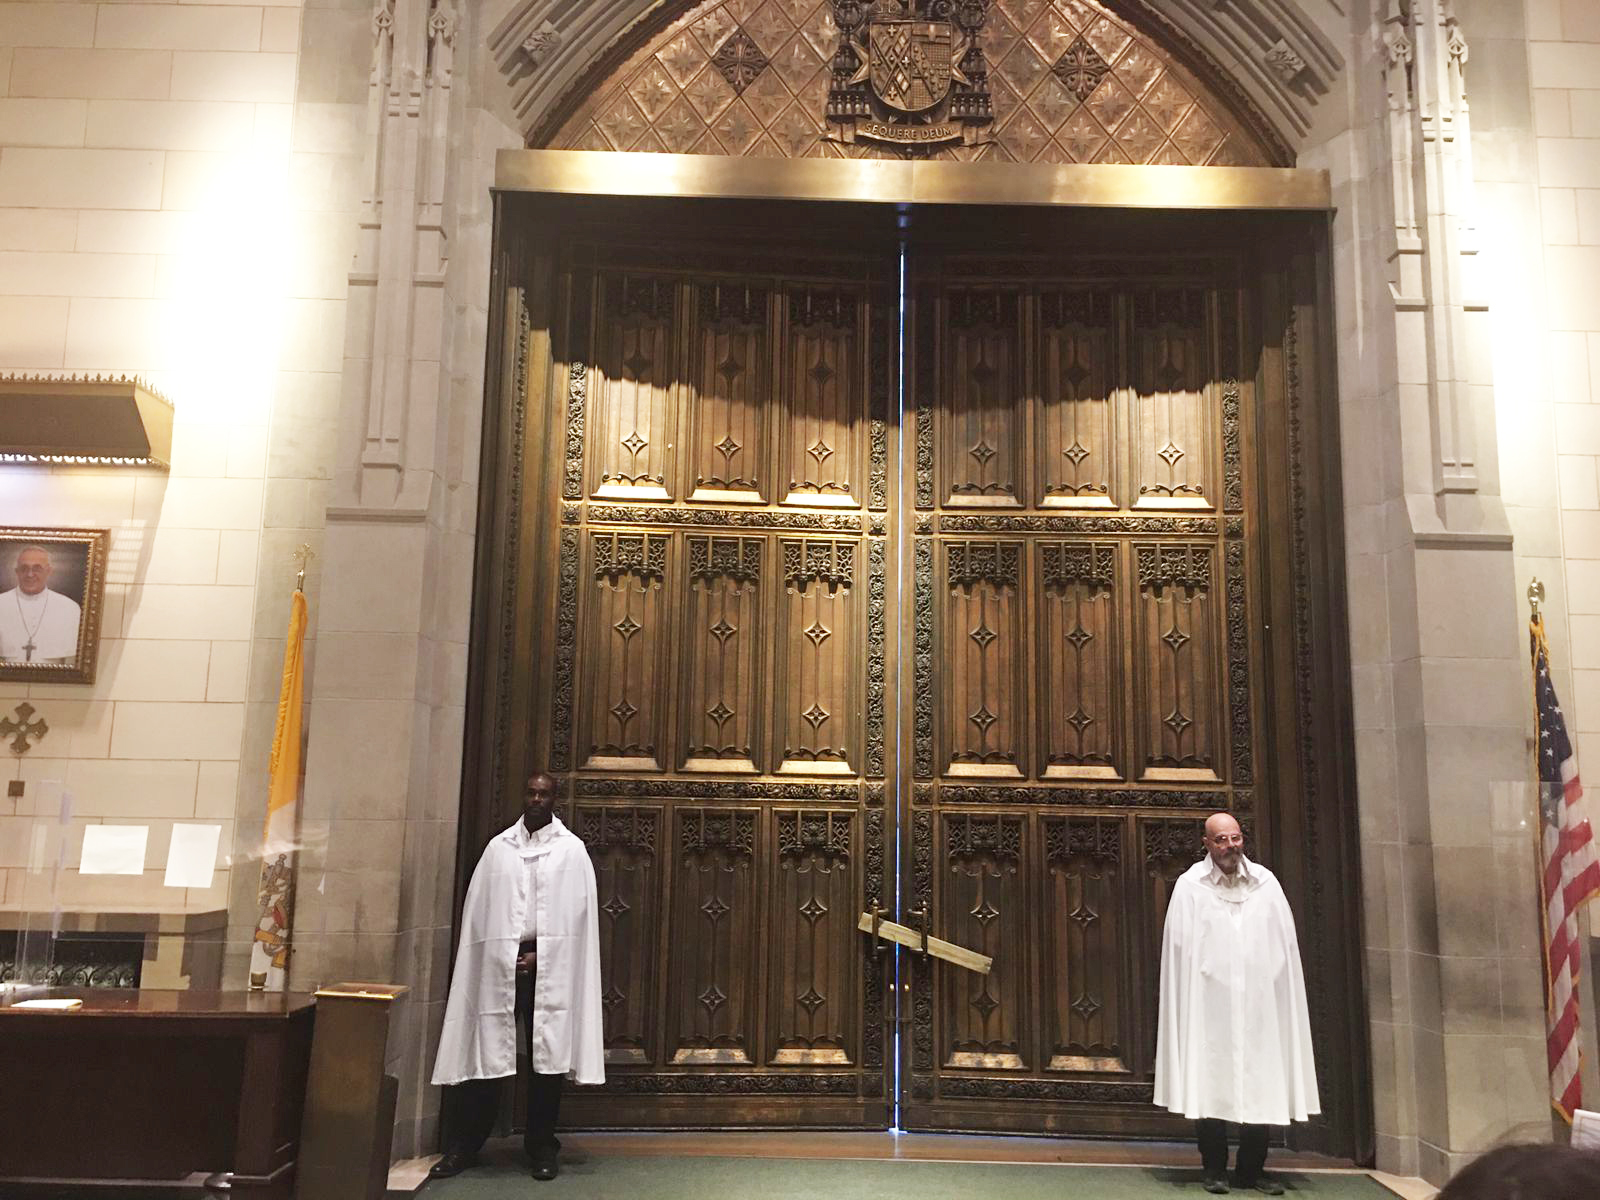 Holy mass in St. Patrick Cathedral, New York City